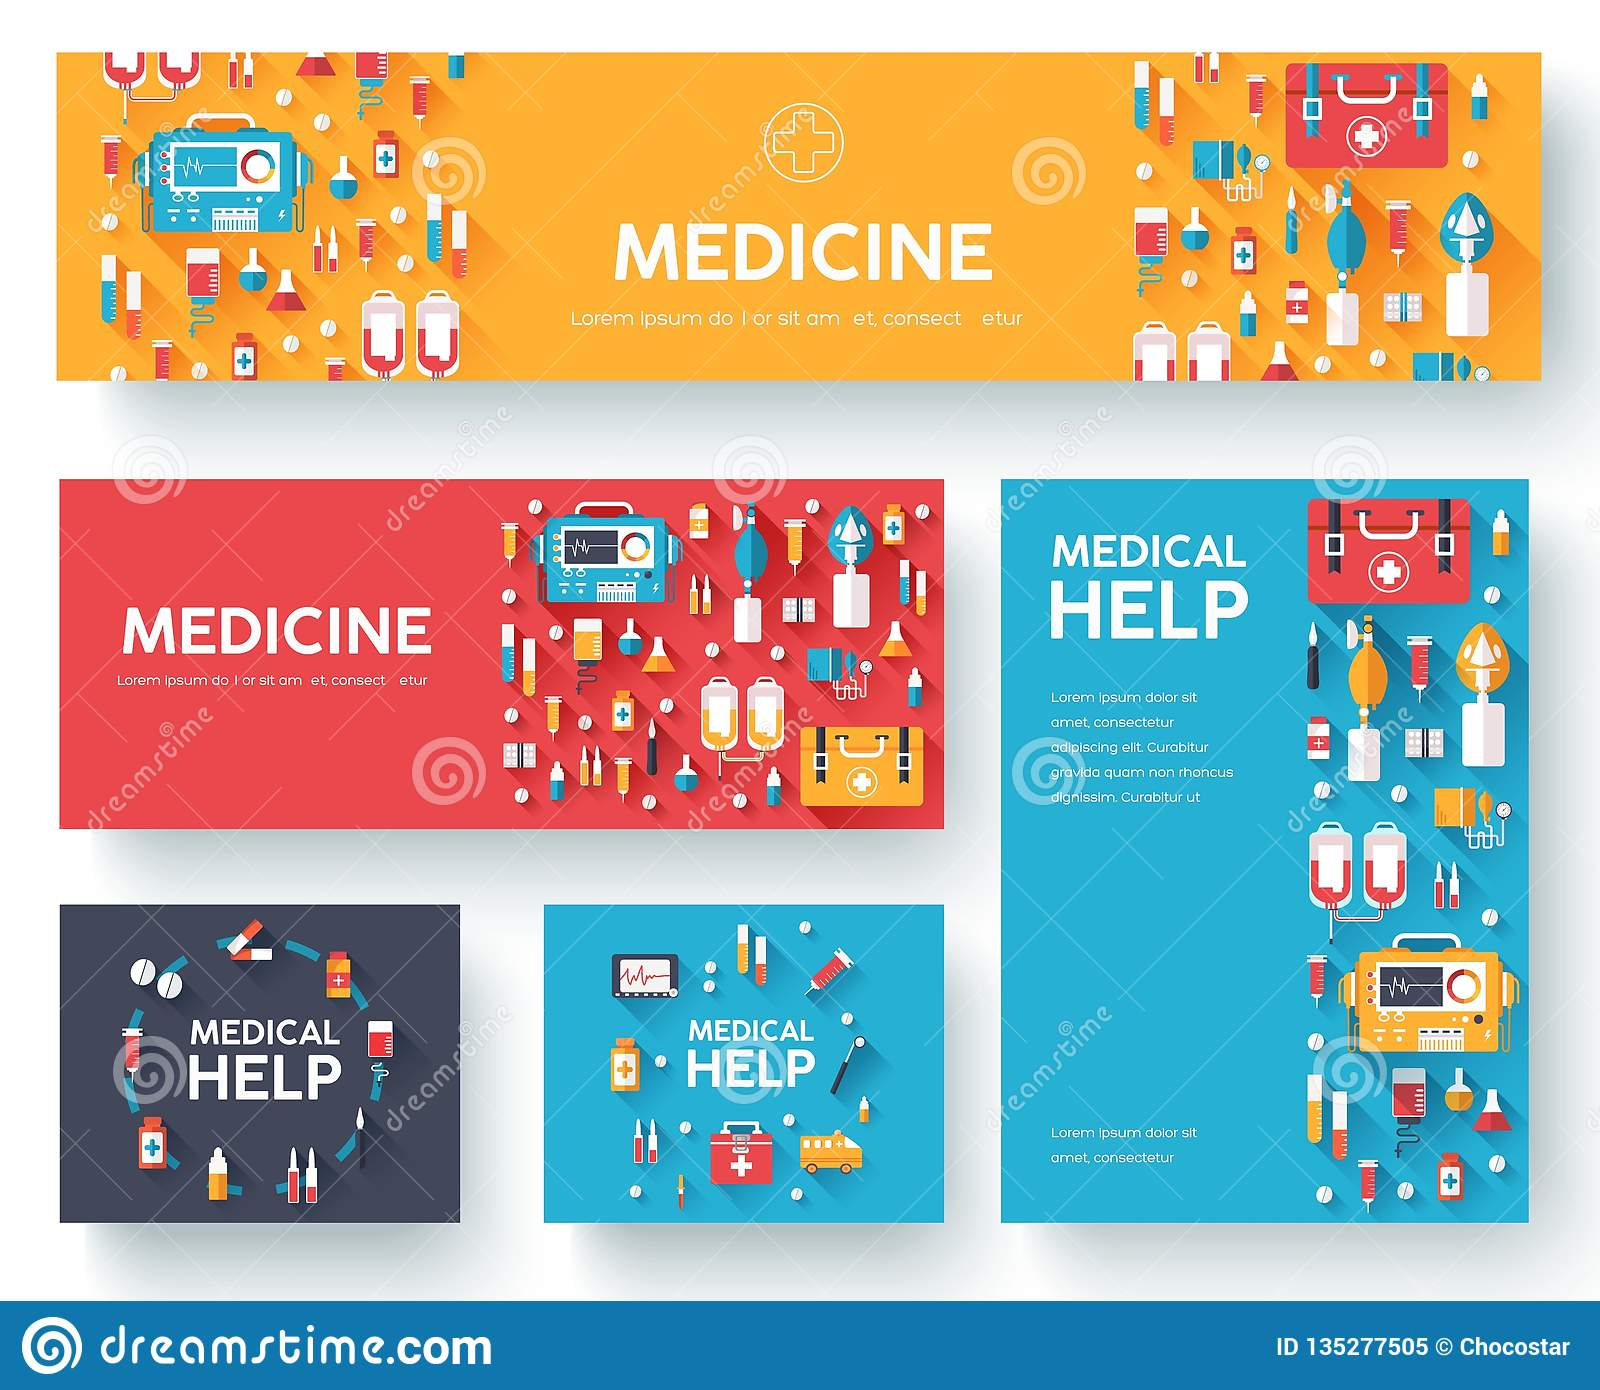 Medicine information cards set. Medical template of flyear, magazines, posters, book cover. Clinical infographic concept on